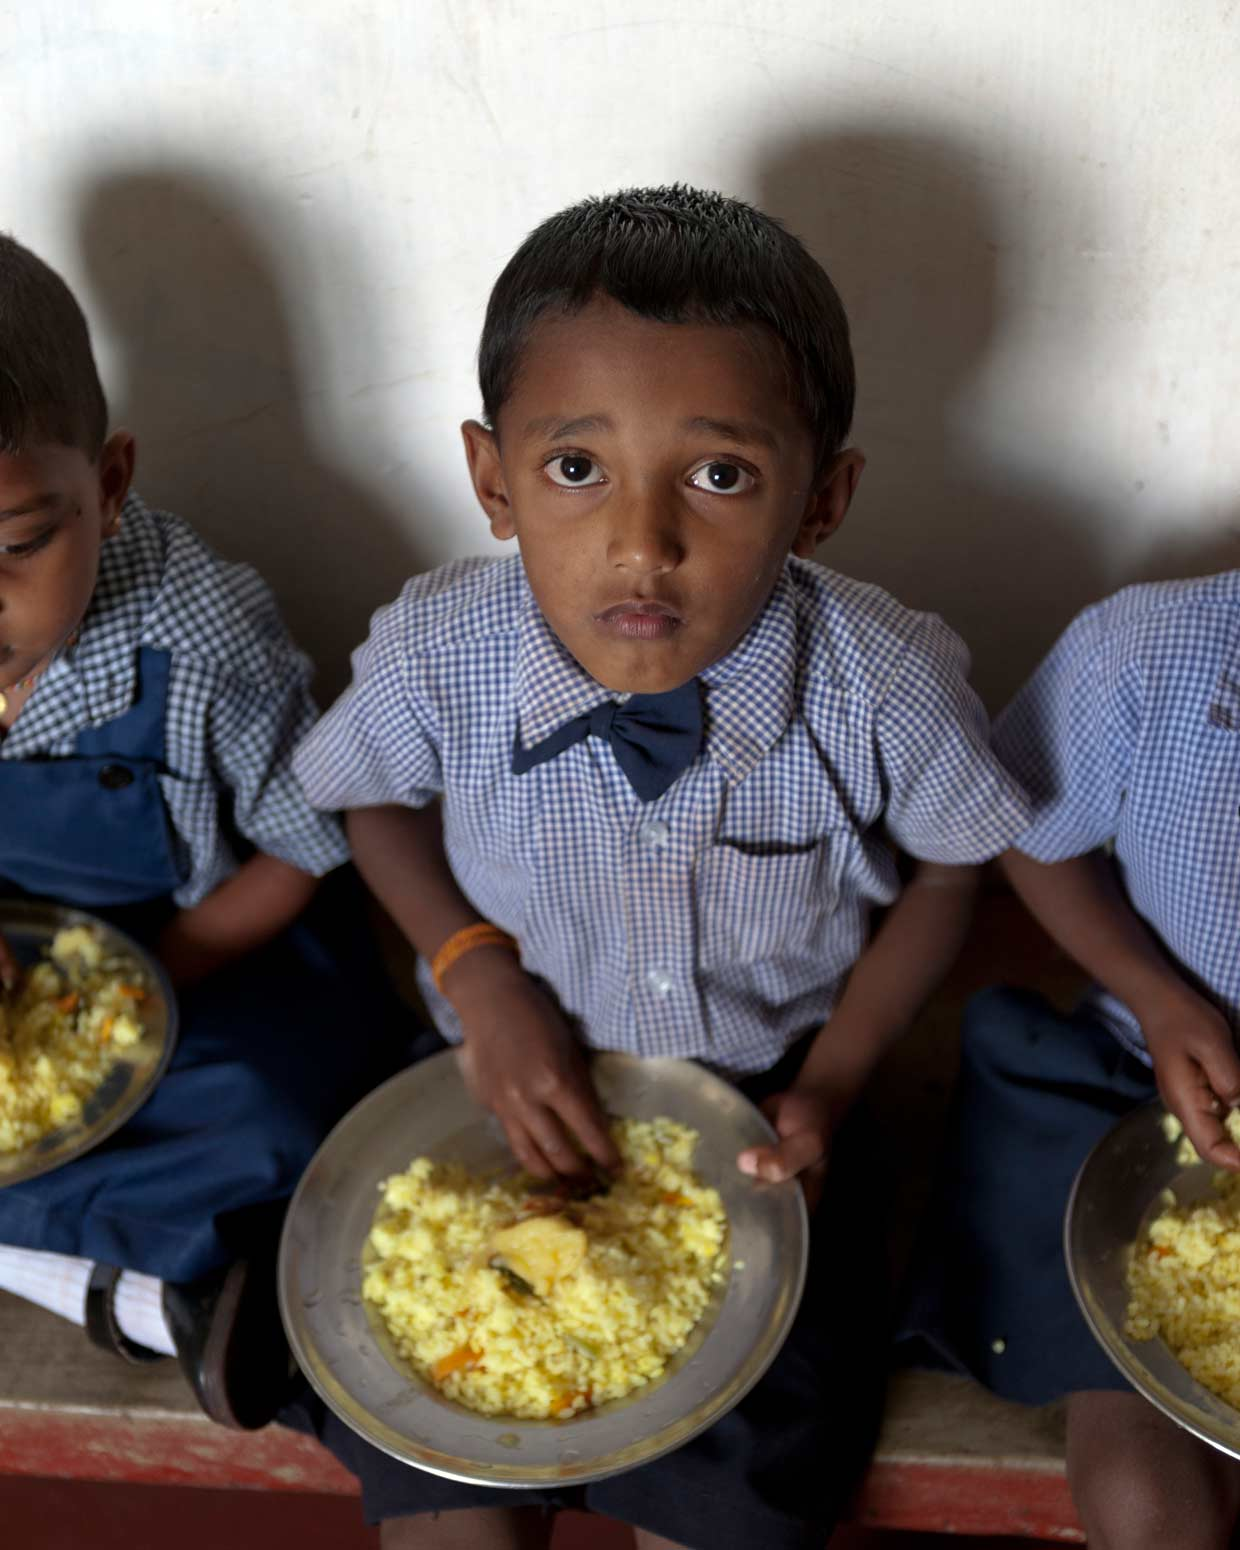 Providing a healthy and nutritious meal for young children attending one of the many plantation sector Child Development Centres. An initiative of the MJF Charitable Foundation in the Kataboola Estate, Nawalapitiya, January 2012.